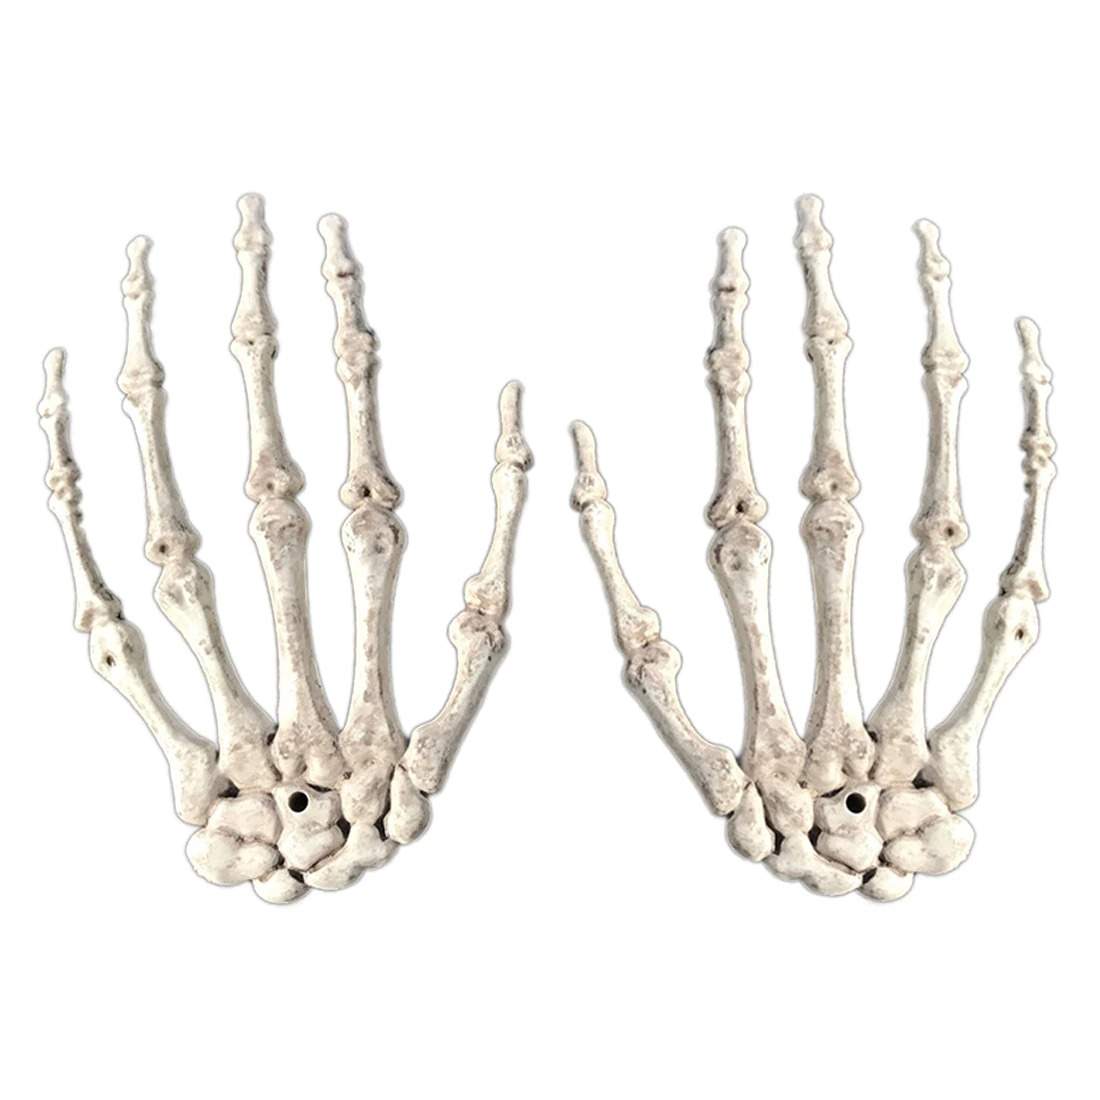 1 Pair Halloween Decoration Realistic Life Size Skeleton Hands Plastic Fake Human Hand Bone Zombie Party Terror Scary Props